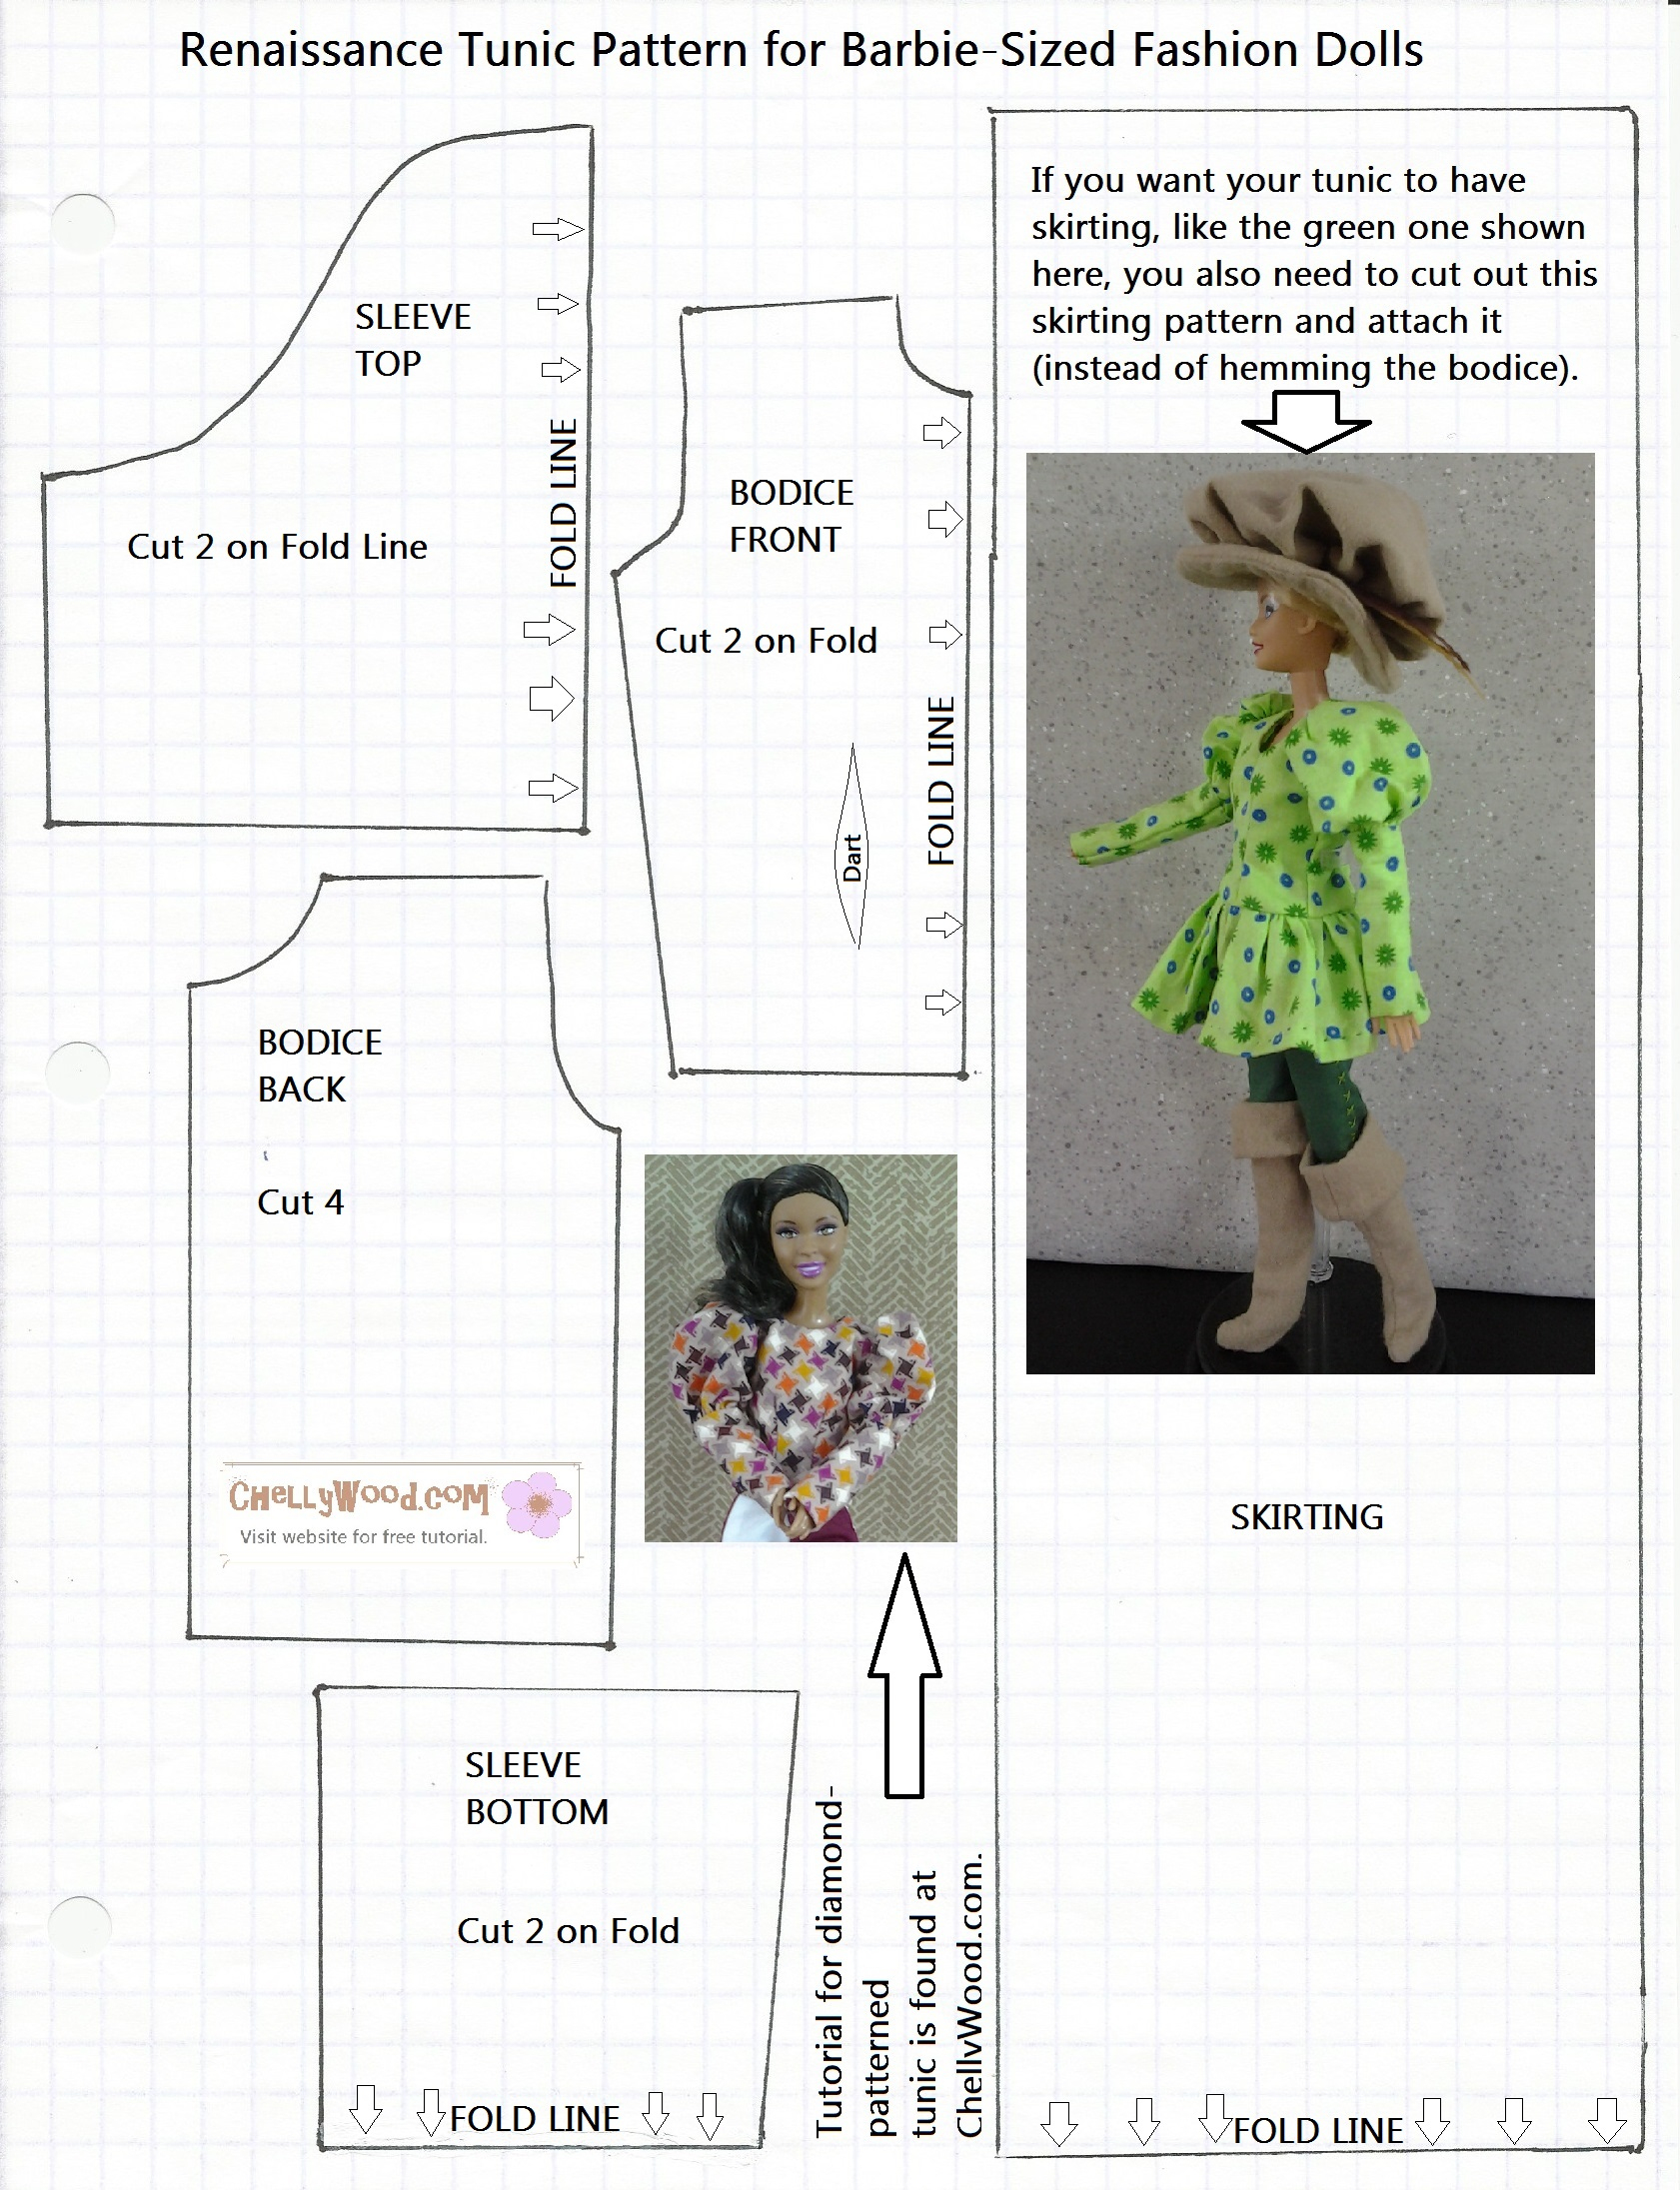 Free Printable Barbie Doll Clothes Patterns – Chellywood - Free Printable Sewing Patterns Pdf